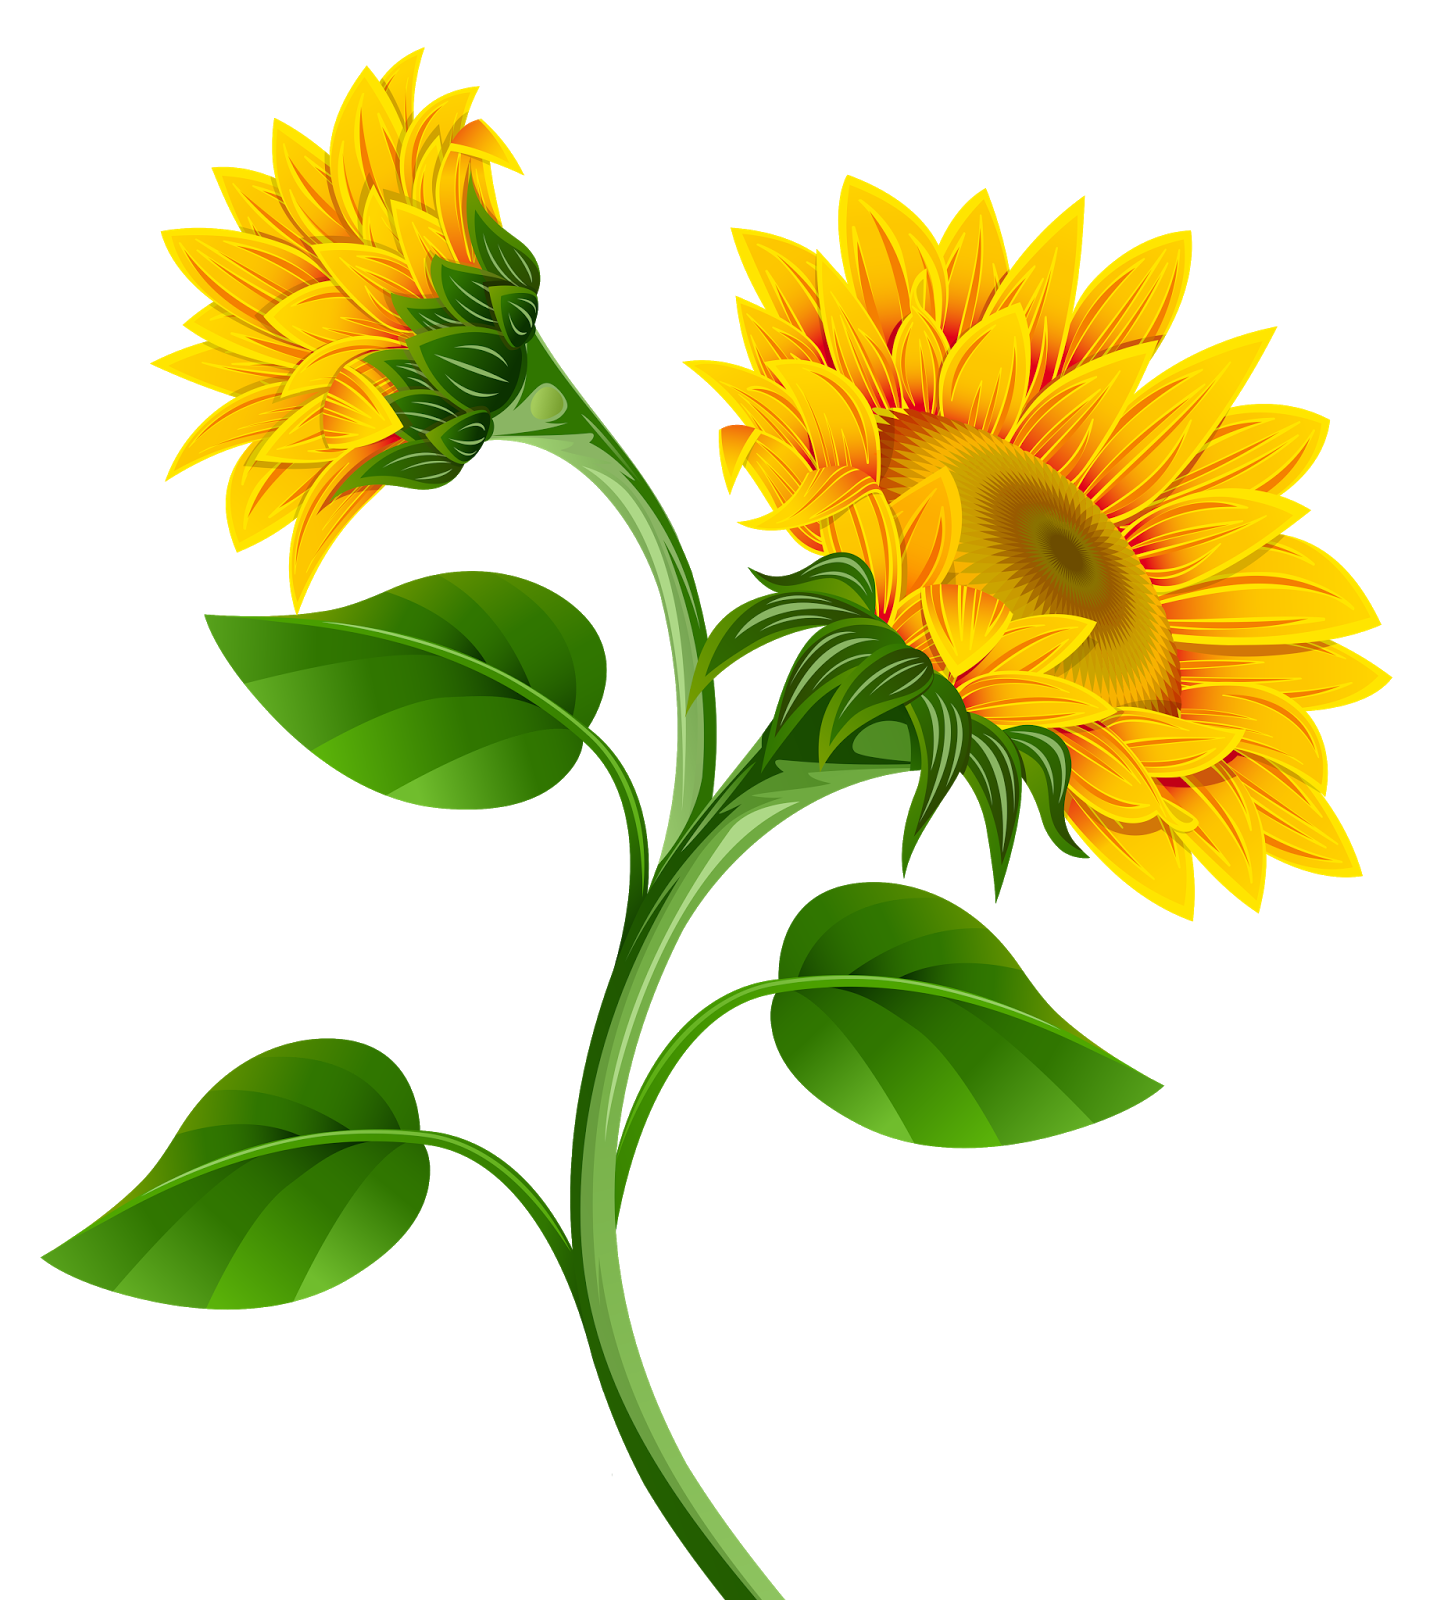 Sunflowers png image girassol. Harvest clipart sunflower